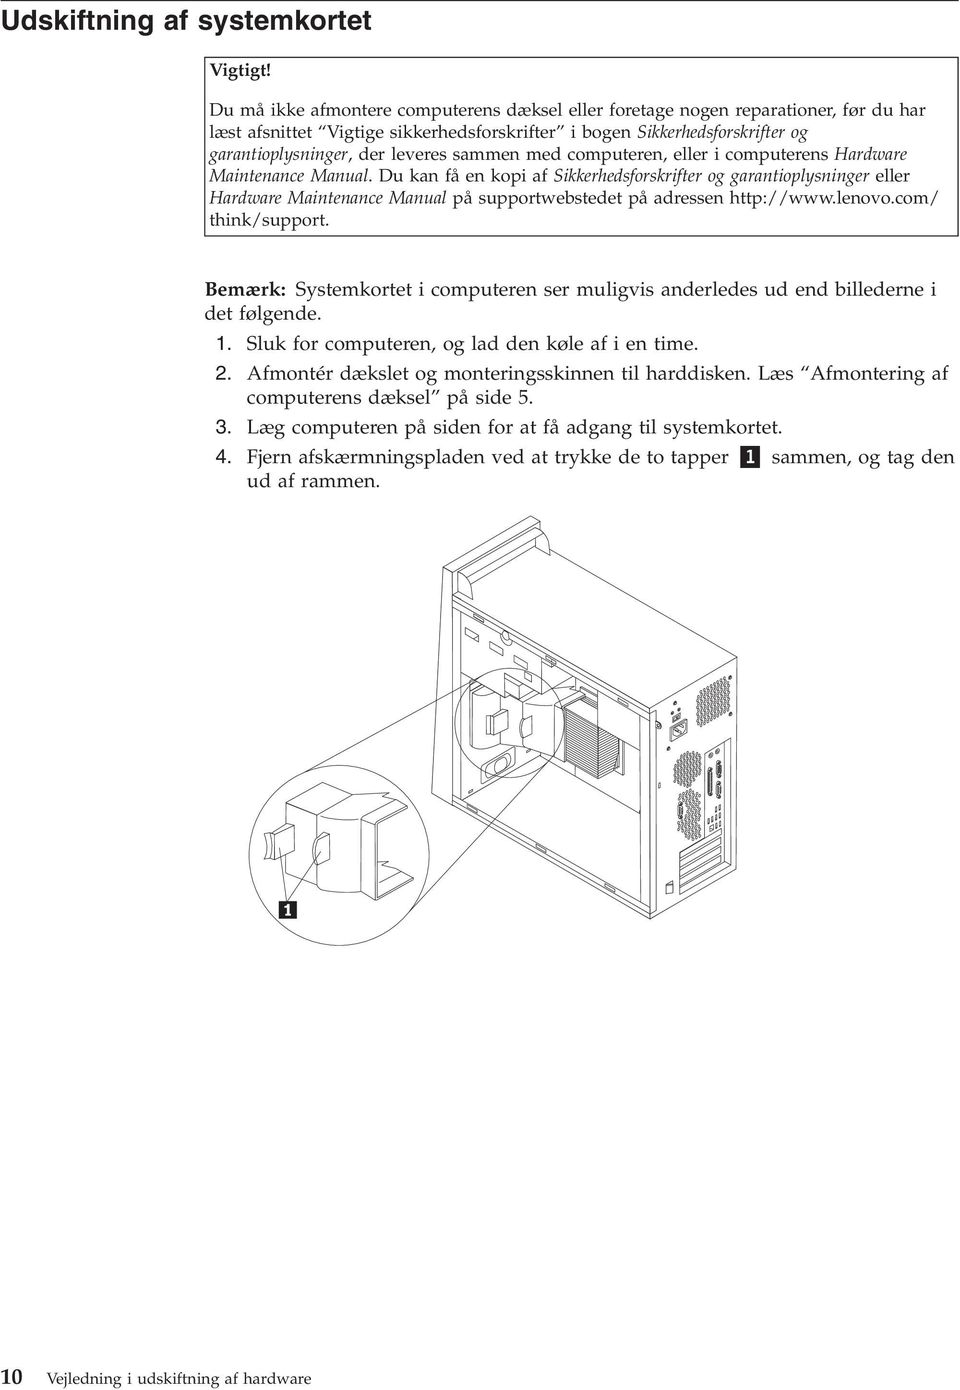 sammen med computeren, eller i computerens Hardware Maintenance Manual.